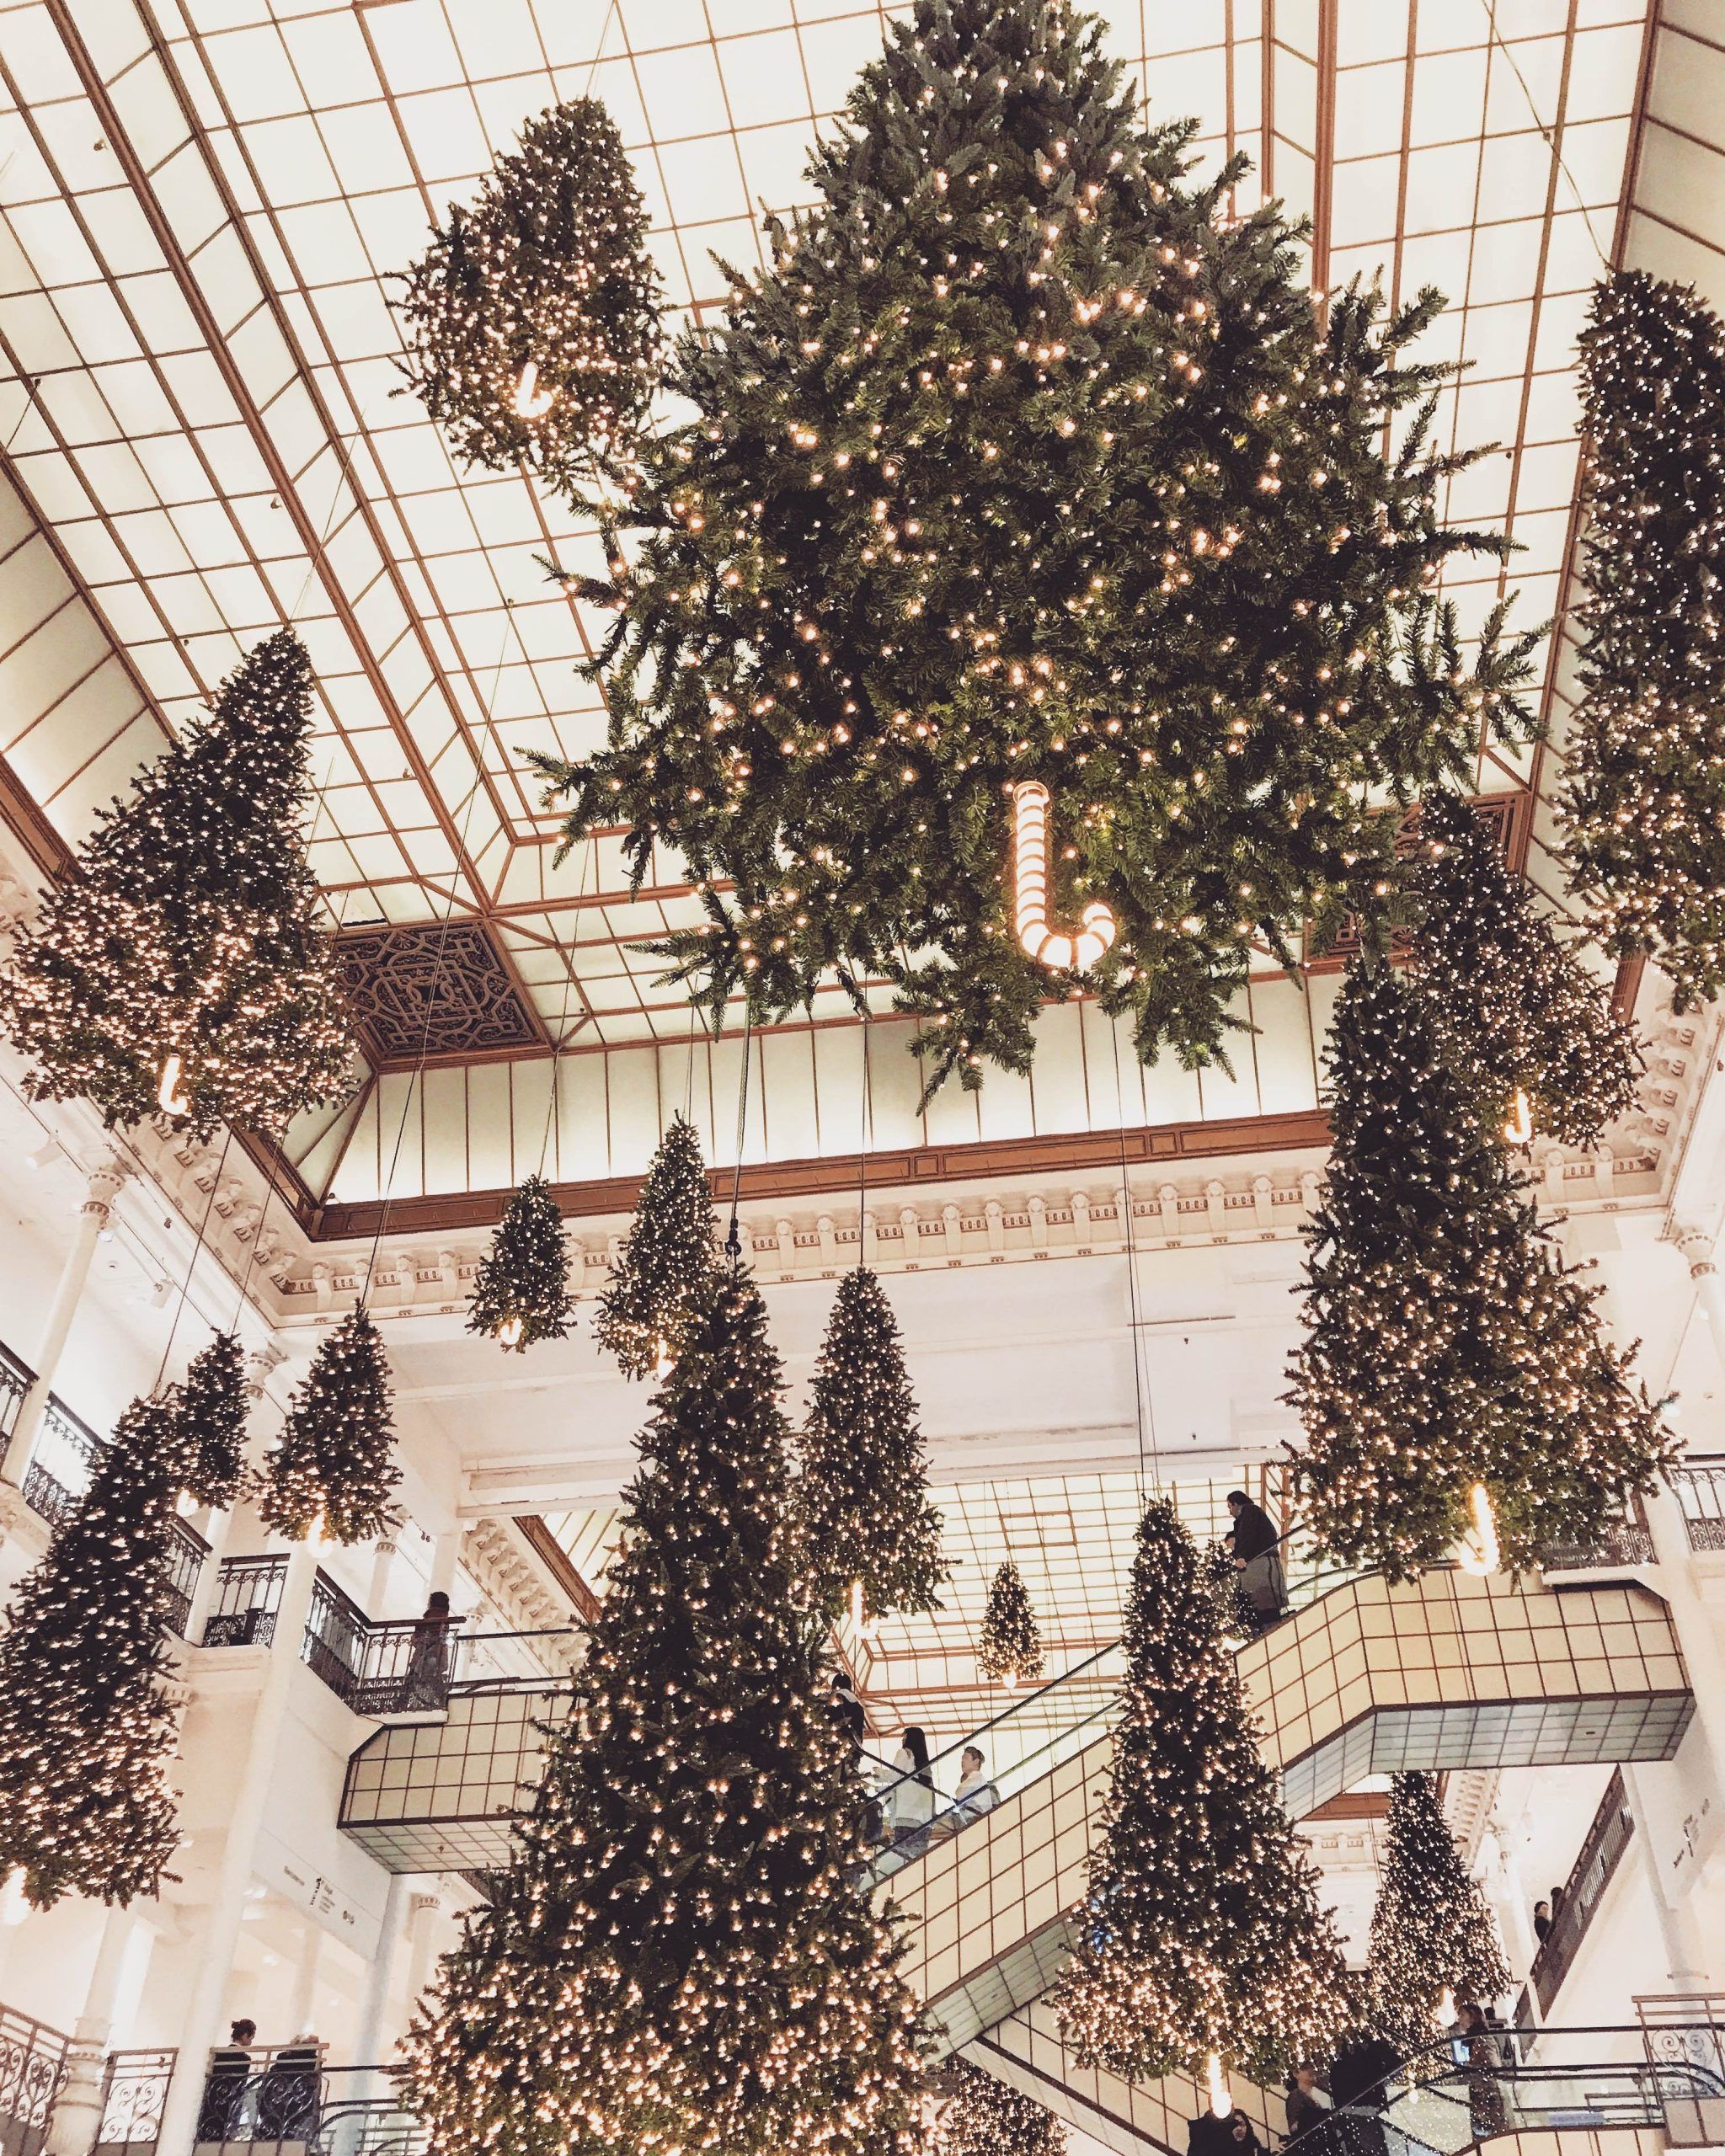 Things To Do In Paris Christmas 2020 Things to do in Paris at Christmas in 2020 | Christmas in paris